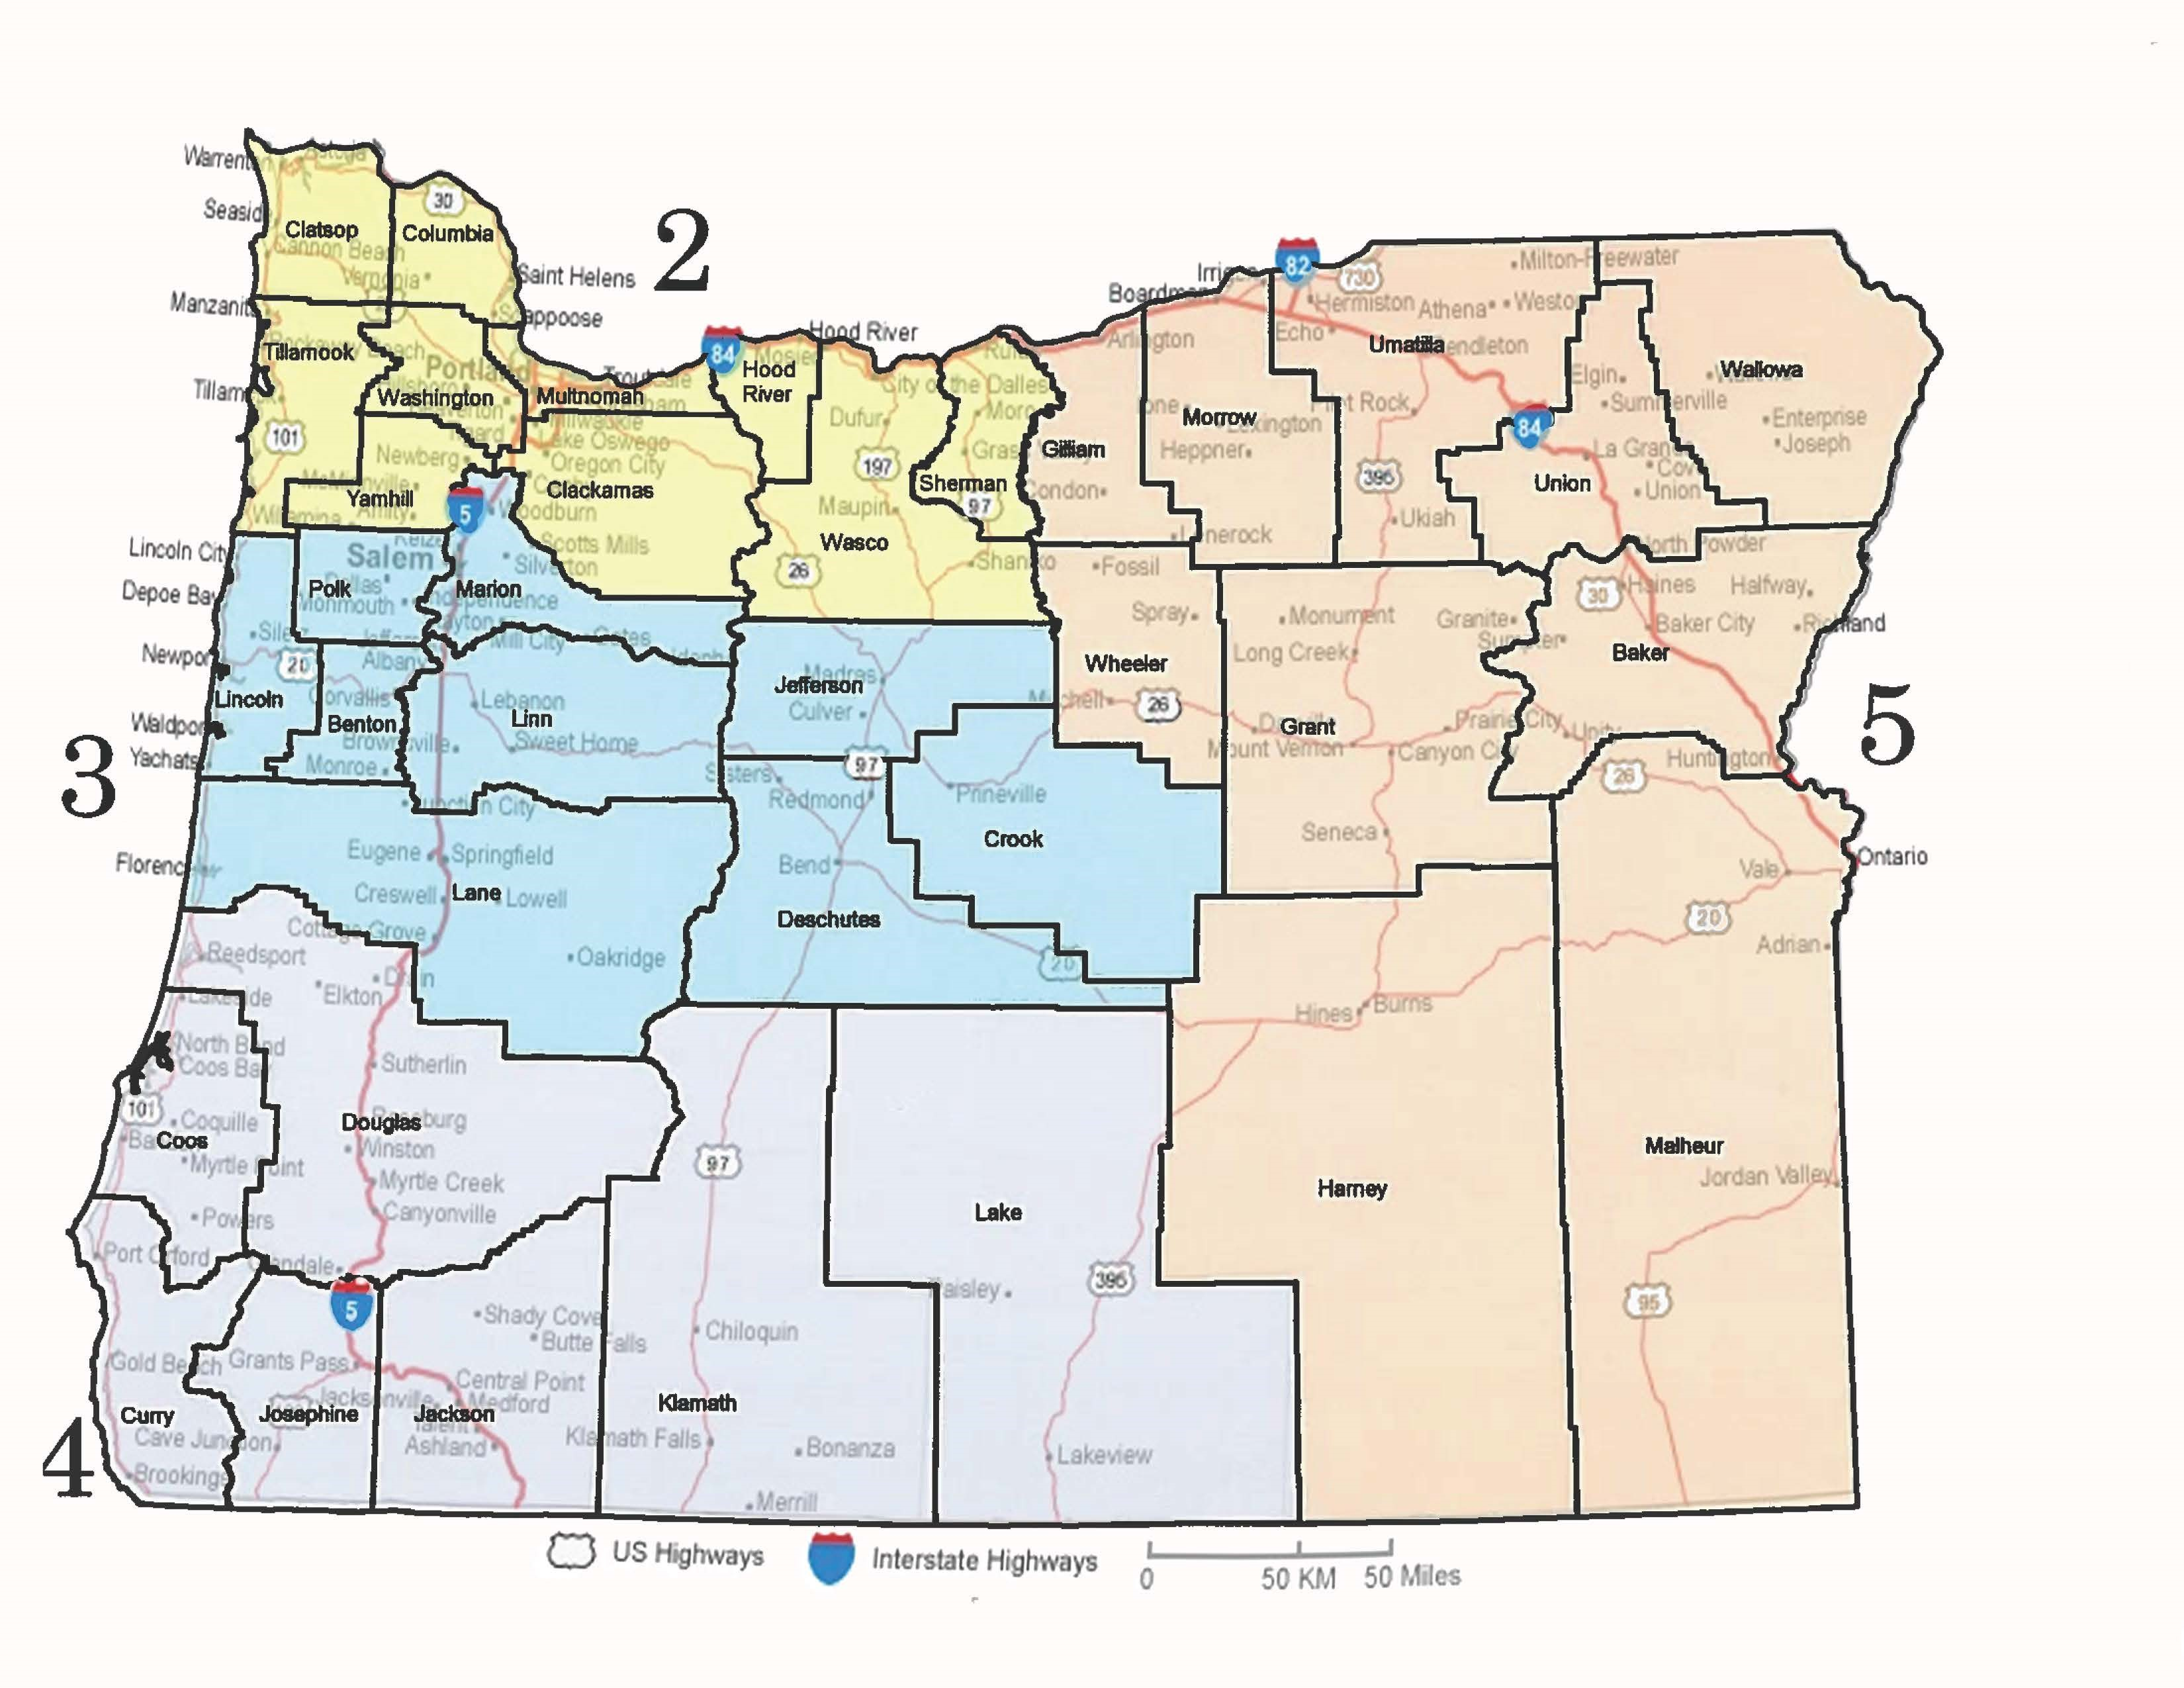 State Of Oregon Map Oregon Office of Emergency Management : State Search and Rescue